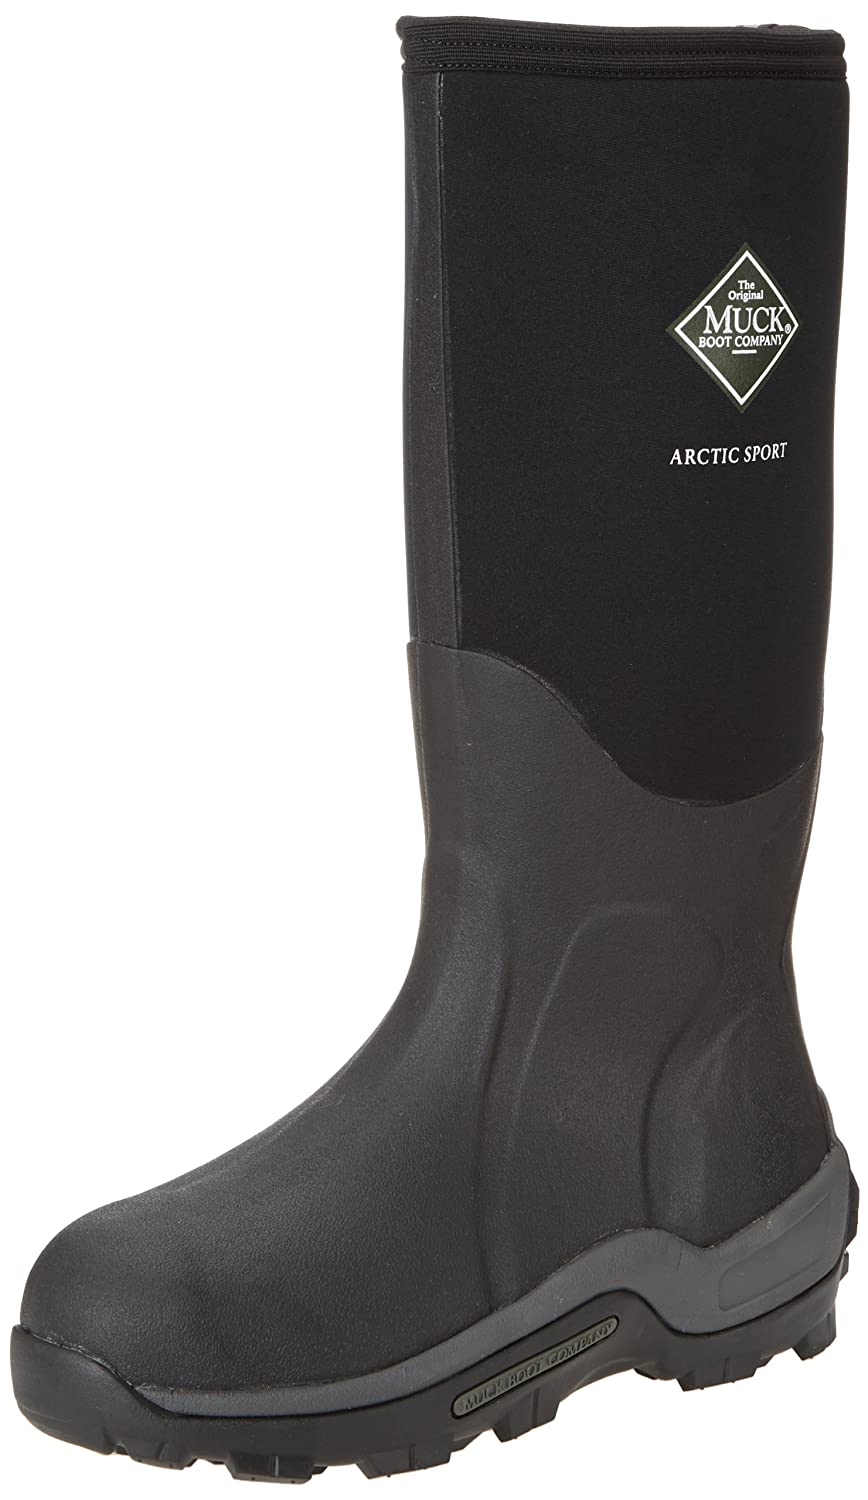 Muck Boots Arctic Sport Unisex Adults Multisport Outdoor Shoes